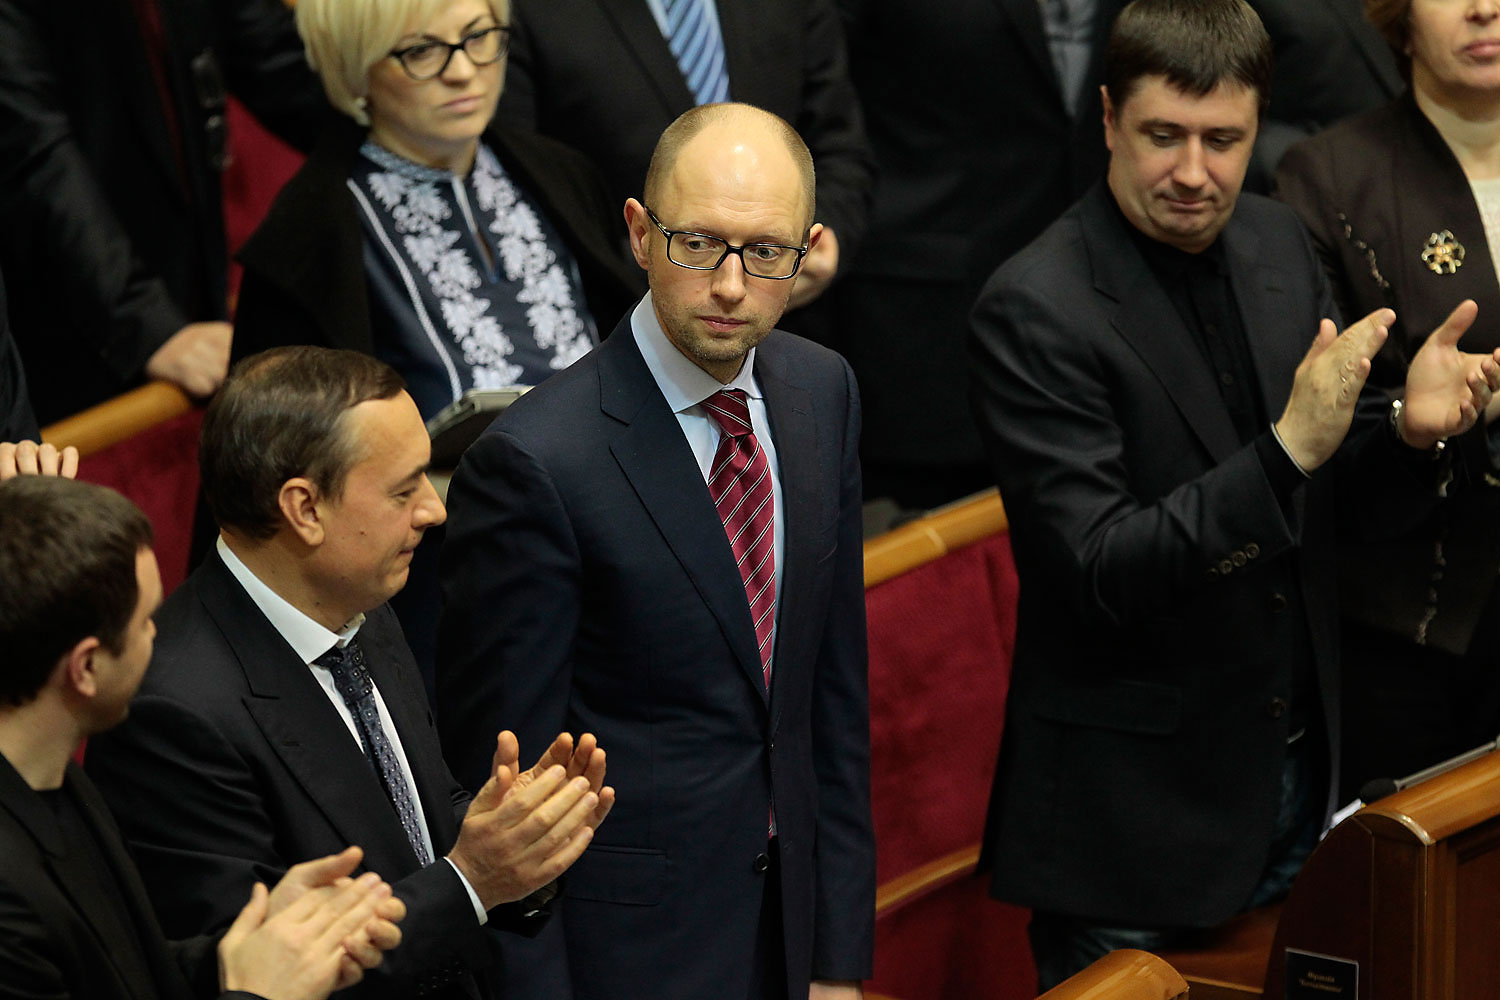 Ukrainian lawmakers applaud new Prime Minister Arseniy Yatsenyuk, center, during a session at the Ukrainian parliament in Kiev, Feb. 27, 2014.